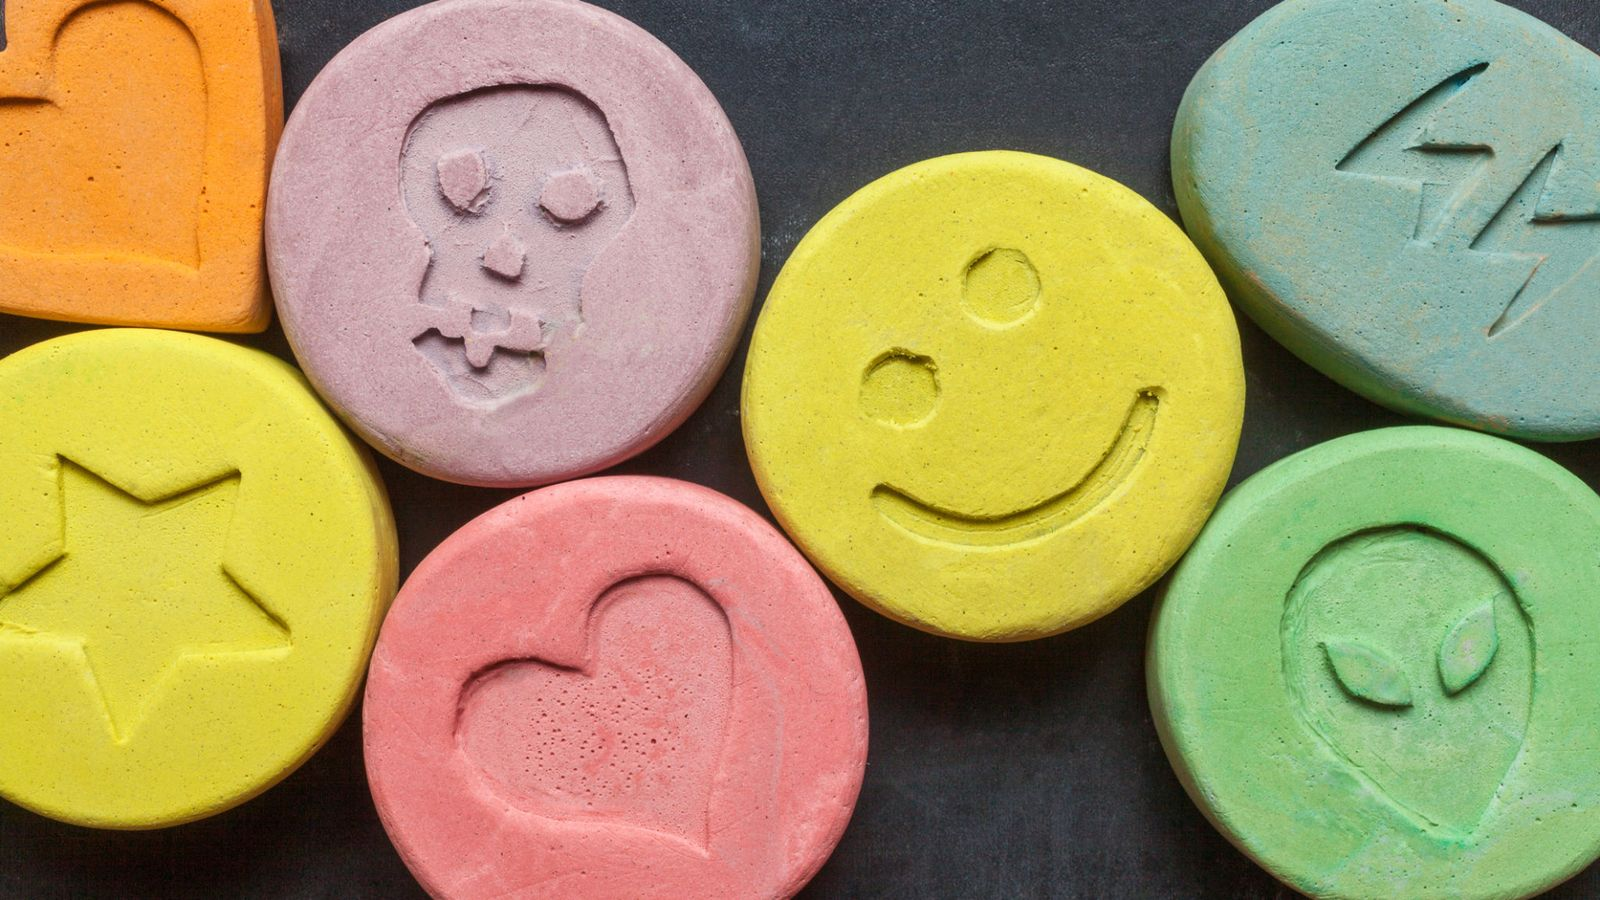 Ecstasy Rehab Centers Find Dual Diagnosis of Depression and Substance Abuse